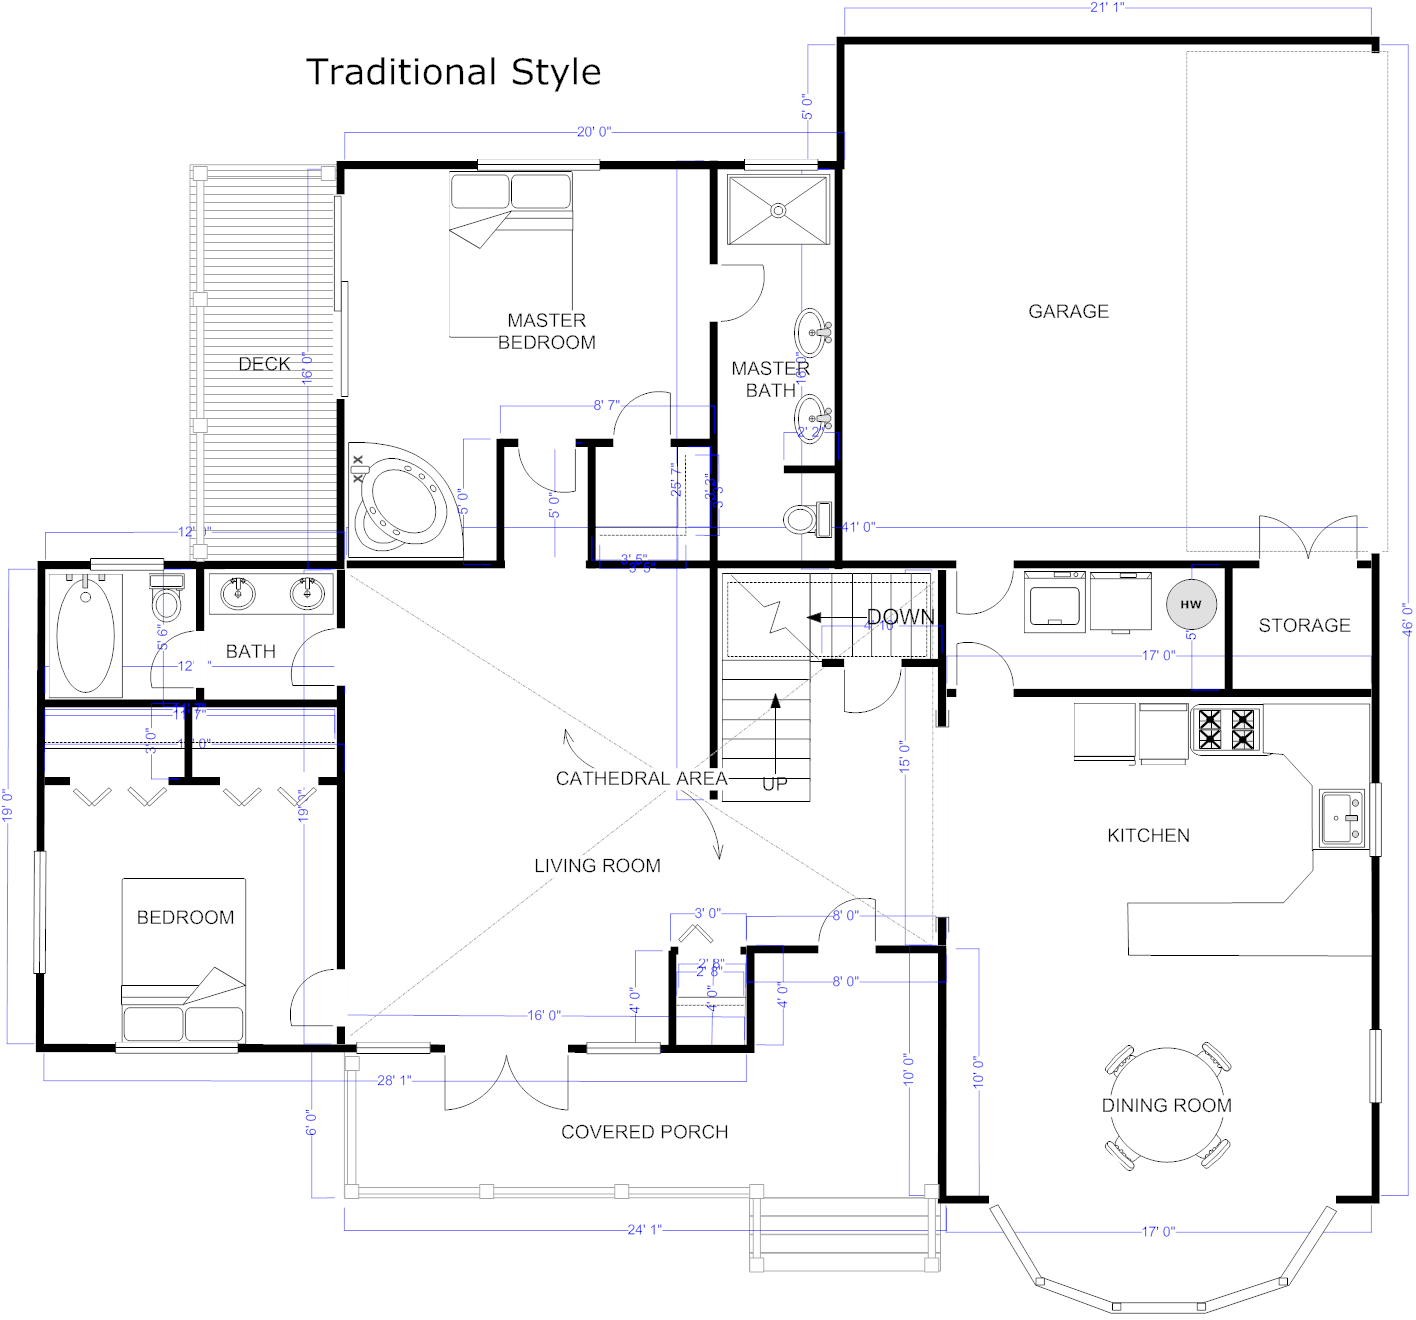 Architecture Drawing Png delighful architecture house design drawing perspective floor